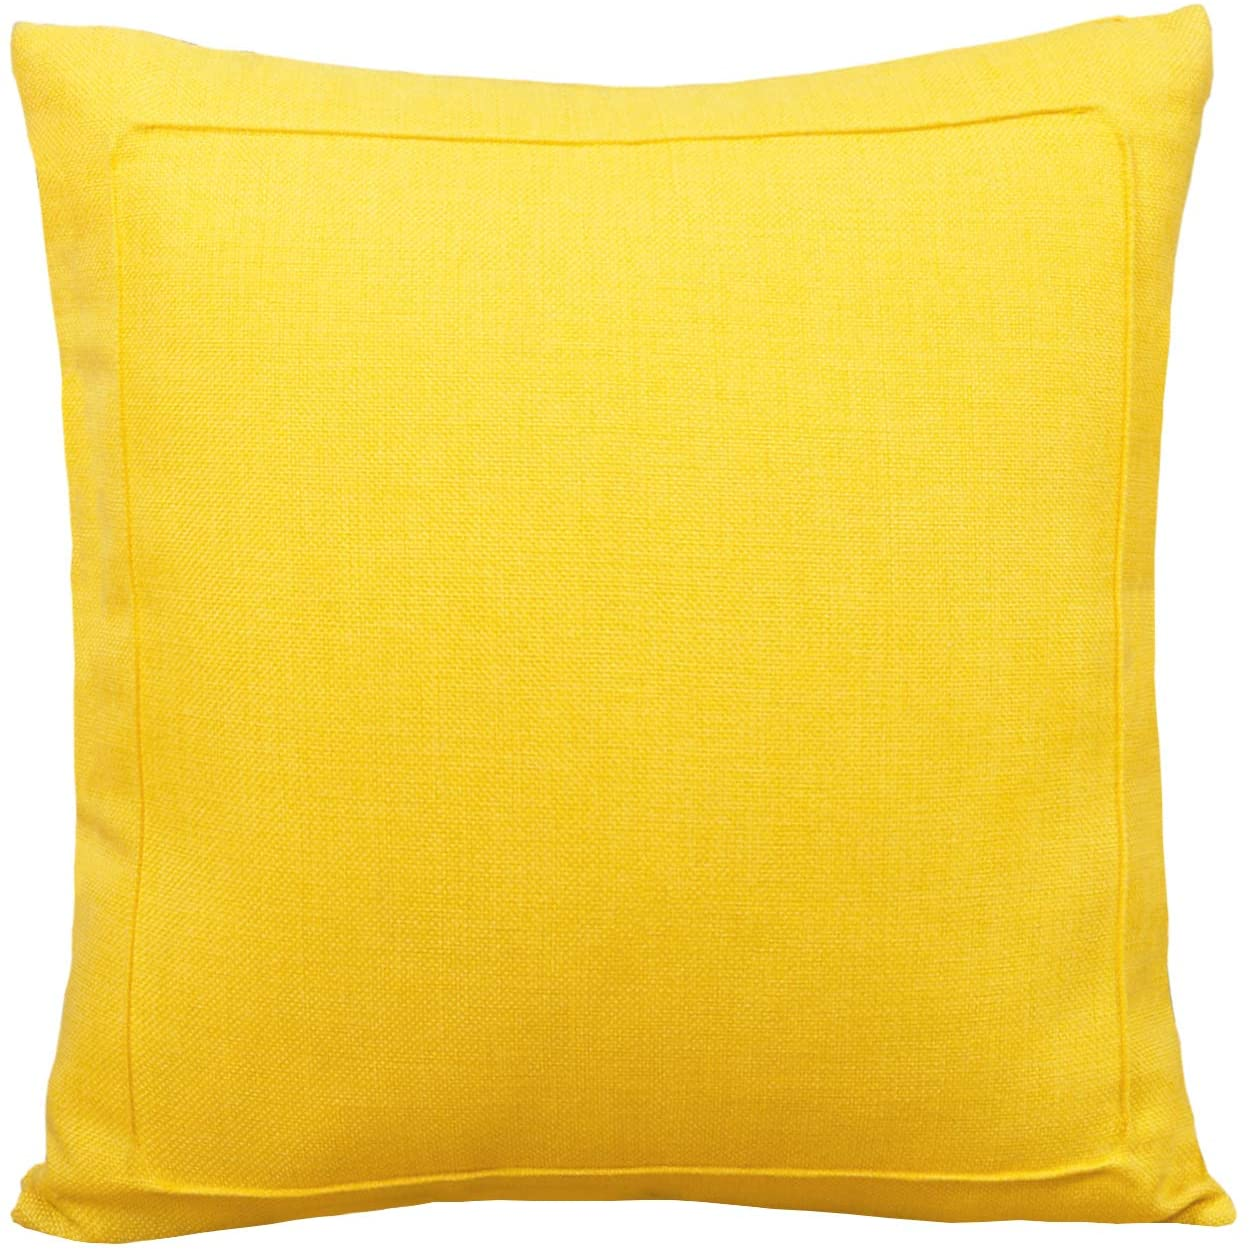 Jepeak Burlap Linen Throw Pillow Cover Cushion Case, Farmhouse Modern Decorative Solid Square Pillow Case, Thickened Luxury for Sofa Couch Bed (20 x 20 Inches, Bright Mustard Yellow)